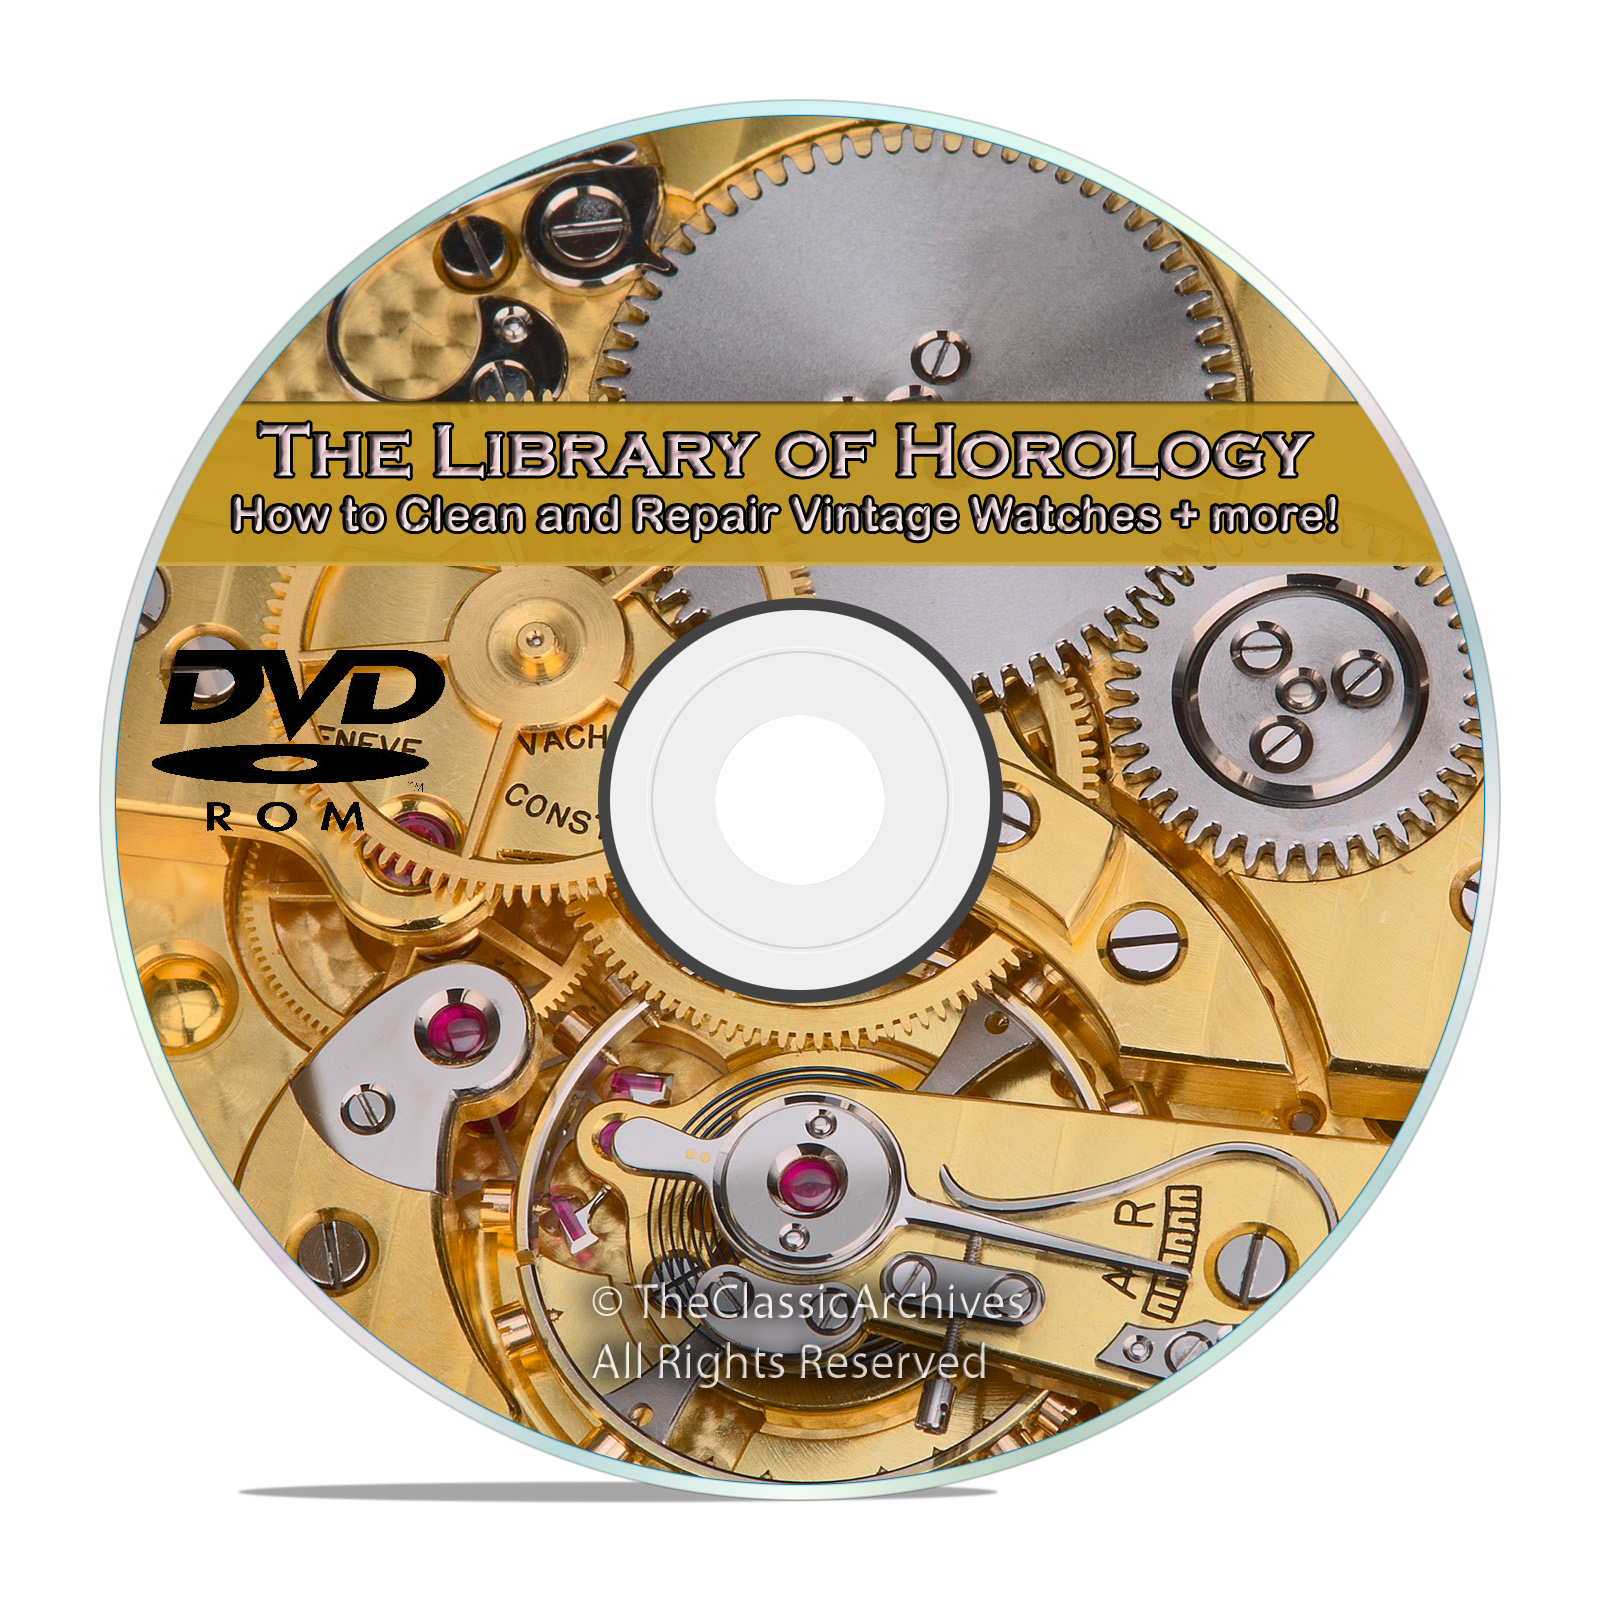 How to Make and Repair Vintage Watches, Vintage Horology Collection DVD